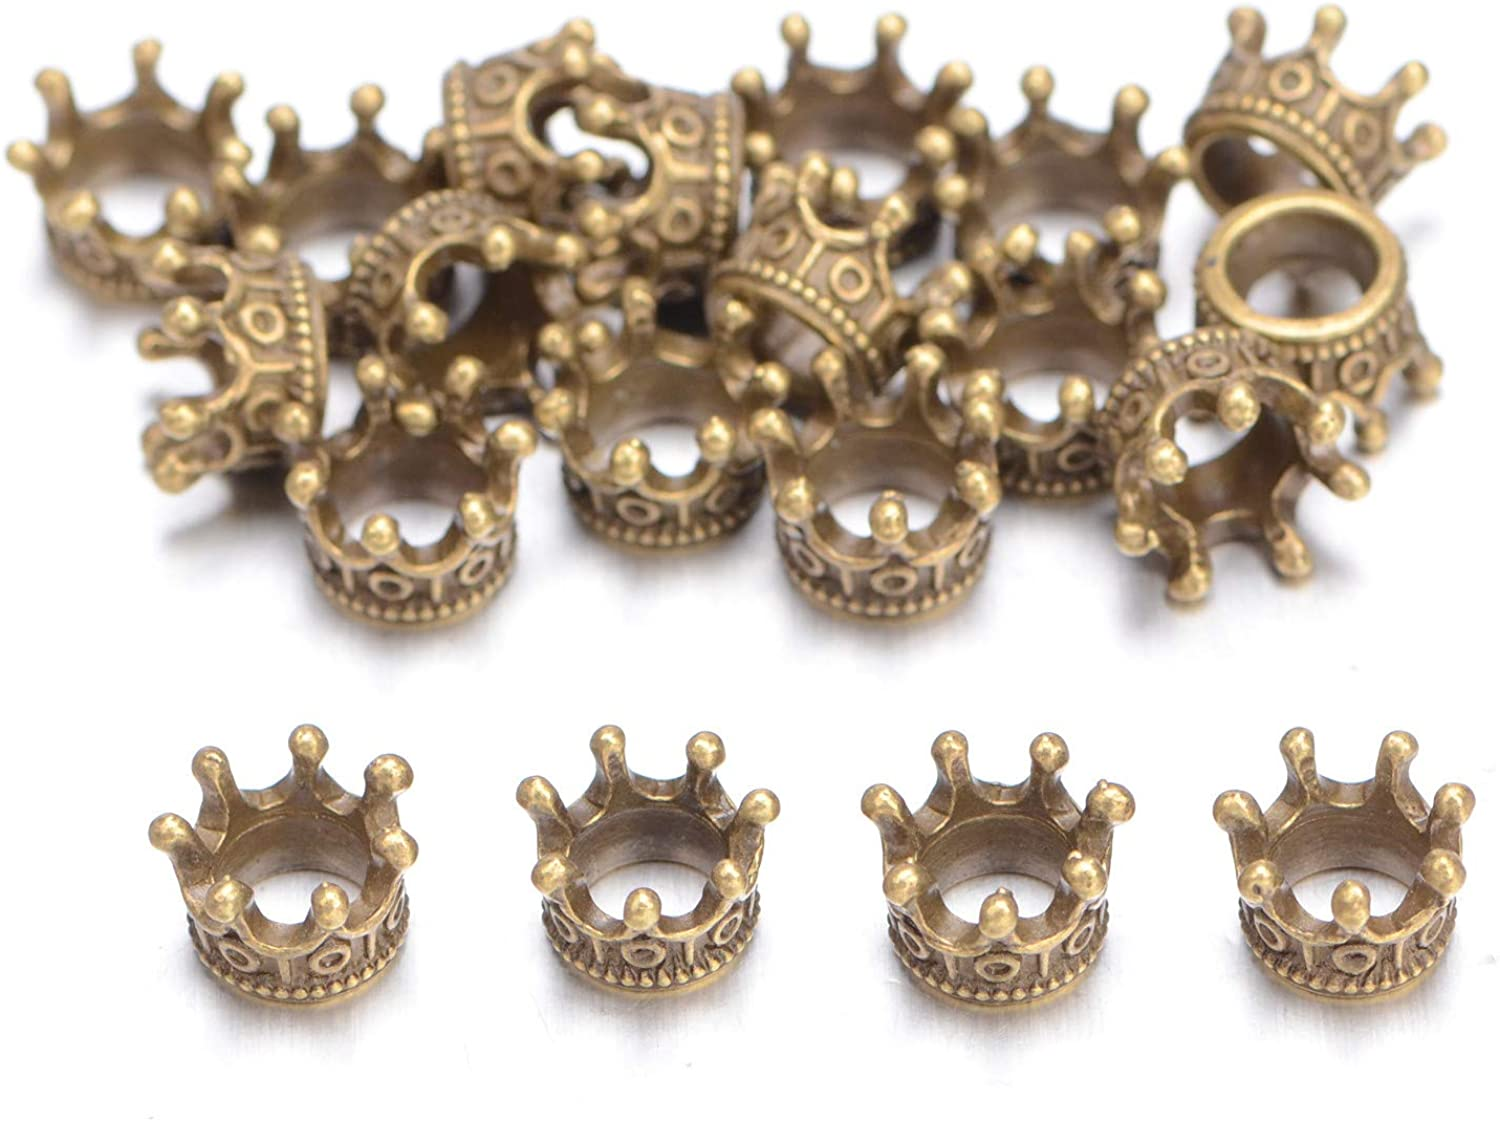 AD Beads 20 Pieces Solid Metal King /& Queen Crown Big Hole Bracelet Connector Charm Beads